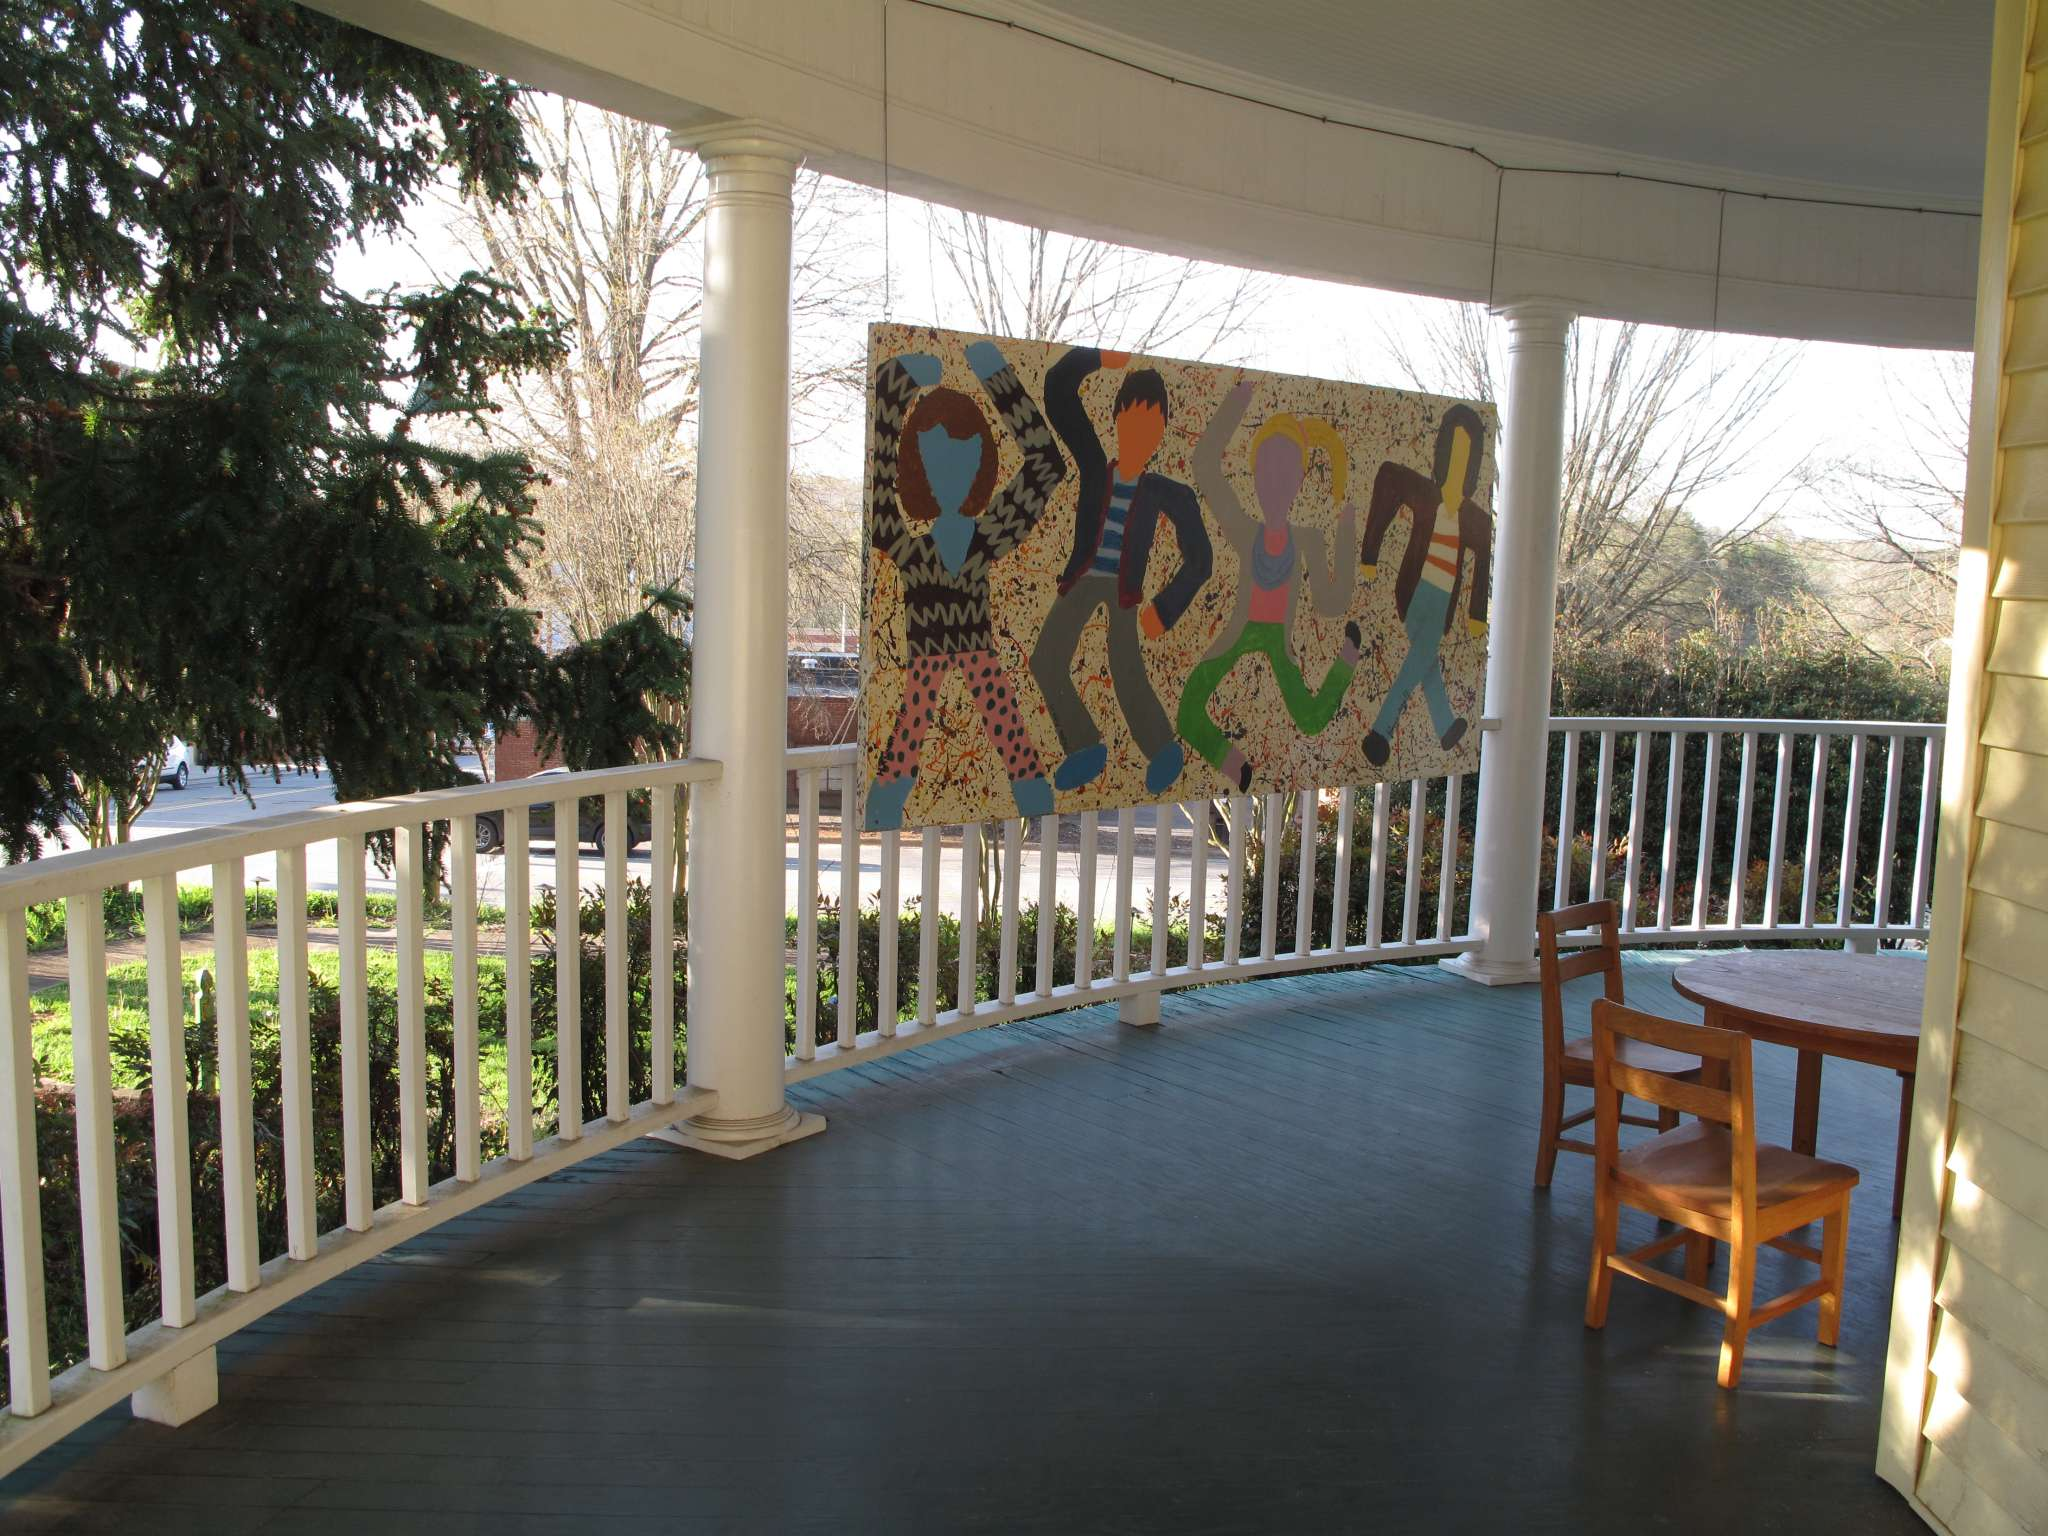 The Foothills Arts Council is in a Victorian home in Elkin.